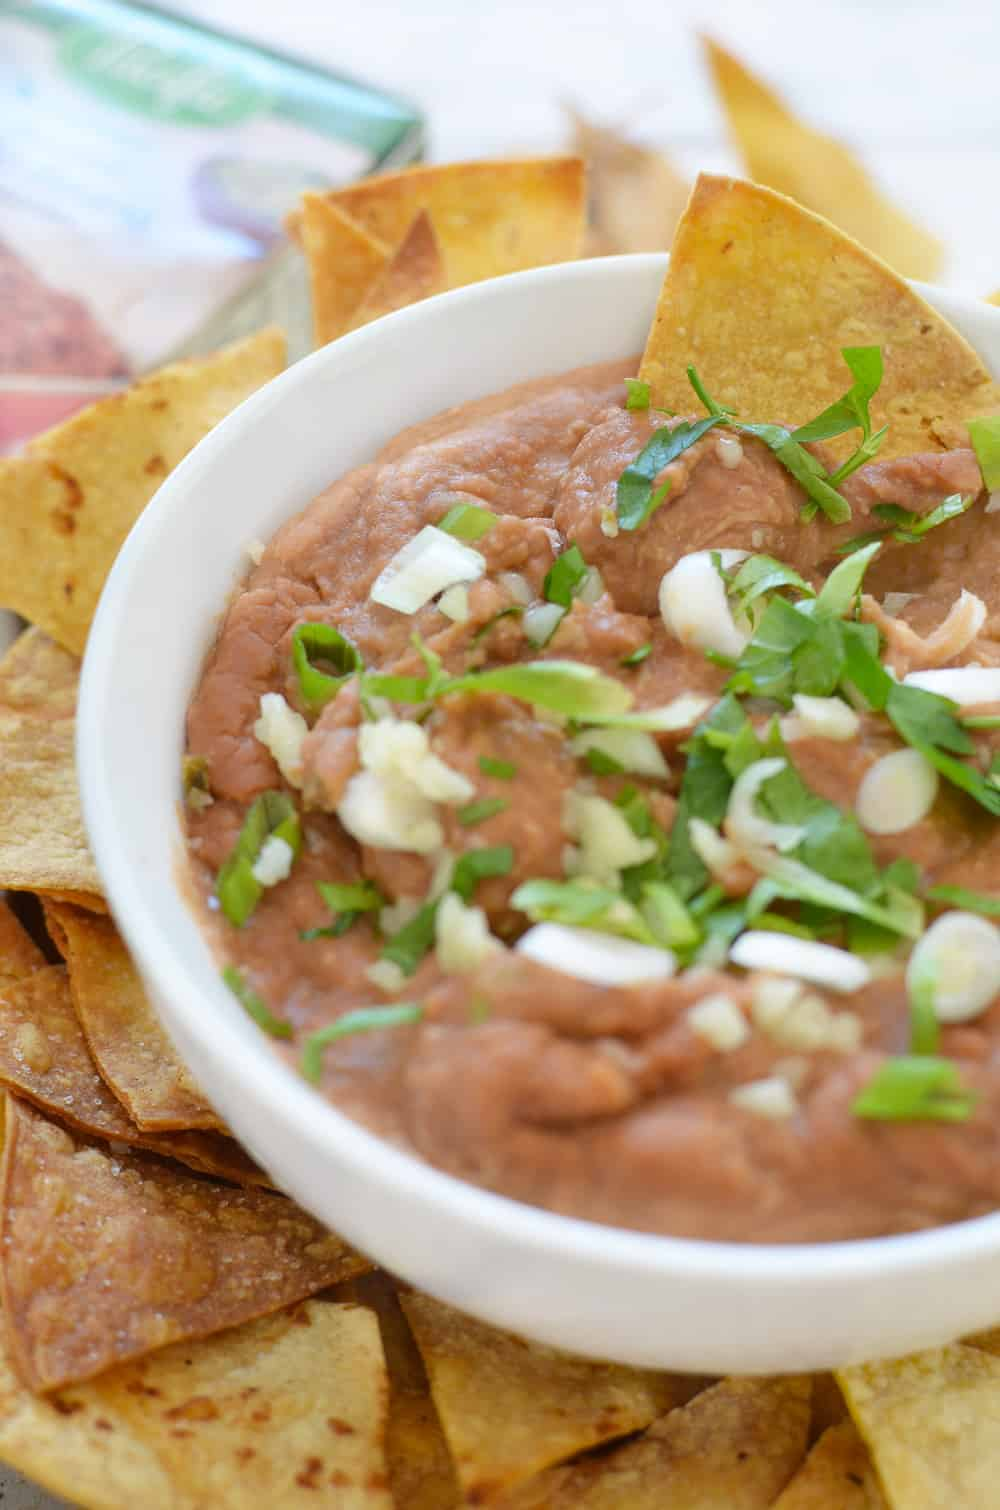 15 minute Spicy Bean Dip with Homemade Tortilla Chips! A must-make for tailgates, football games, and parties! Save this one when you need a fast, healthy appetizer option. #vegetarian #glutenfree | www.delishknowledge.com